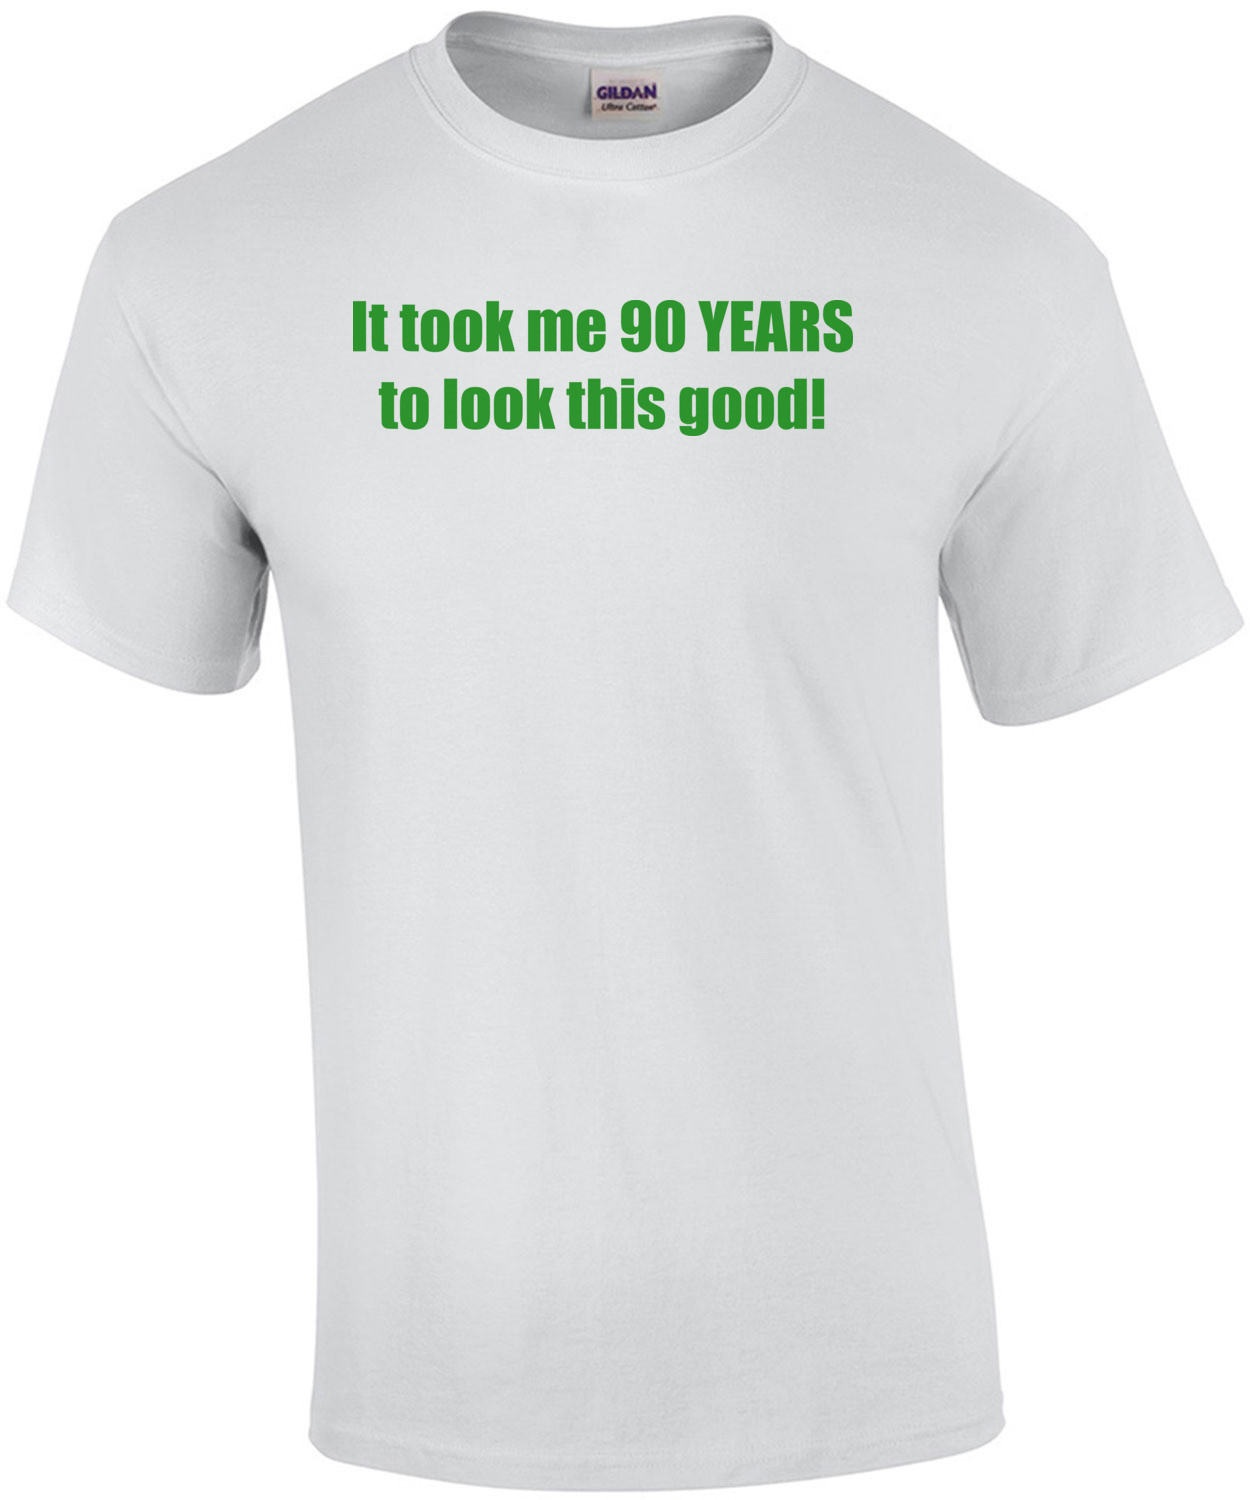 It took me 90 YEARS to look this good! - Happy Birthday Shirt